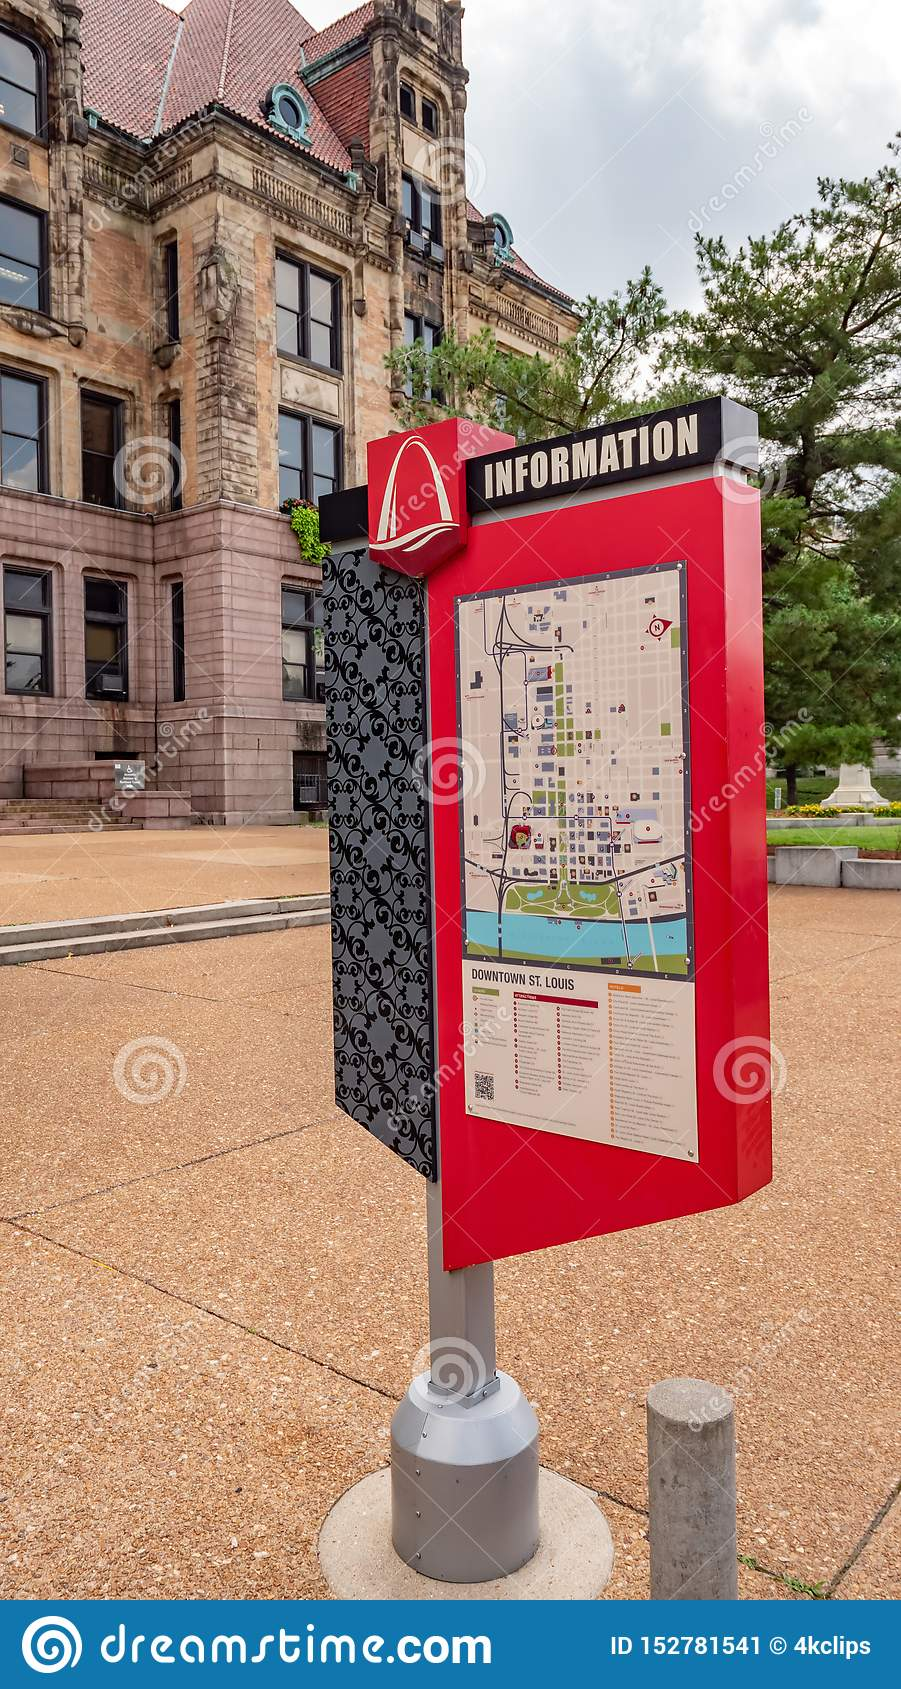 Downtown St Louis Information Map - ST. LOUIS, USA - JUNE 19 ...